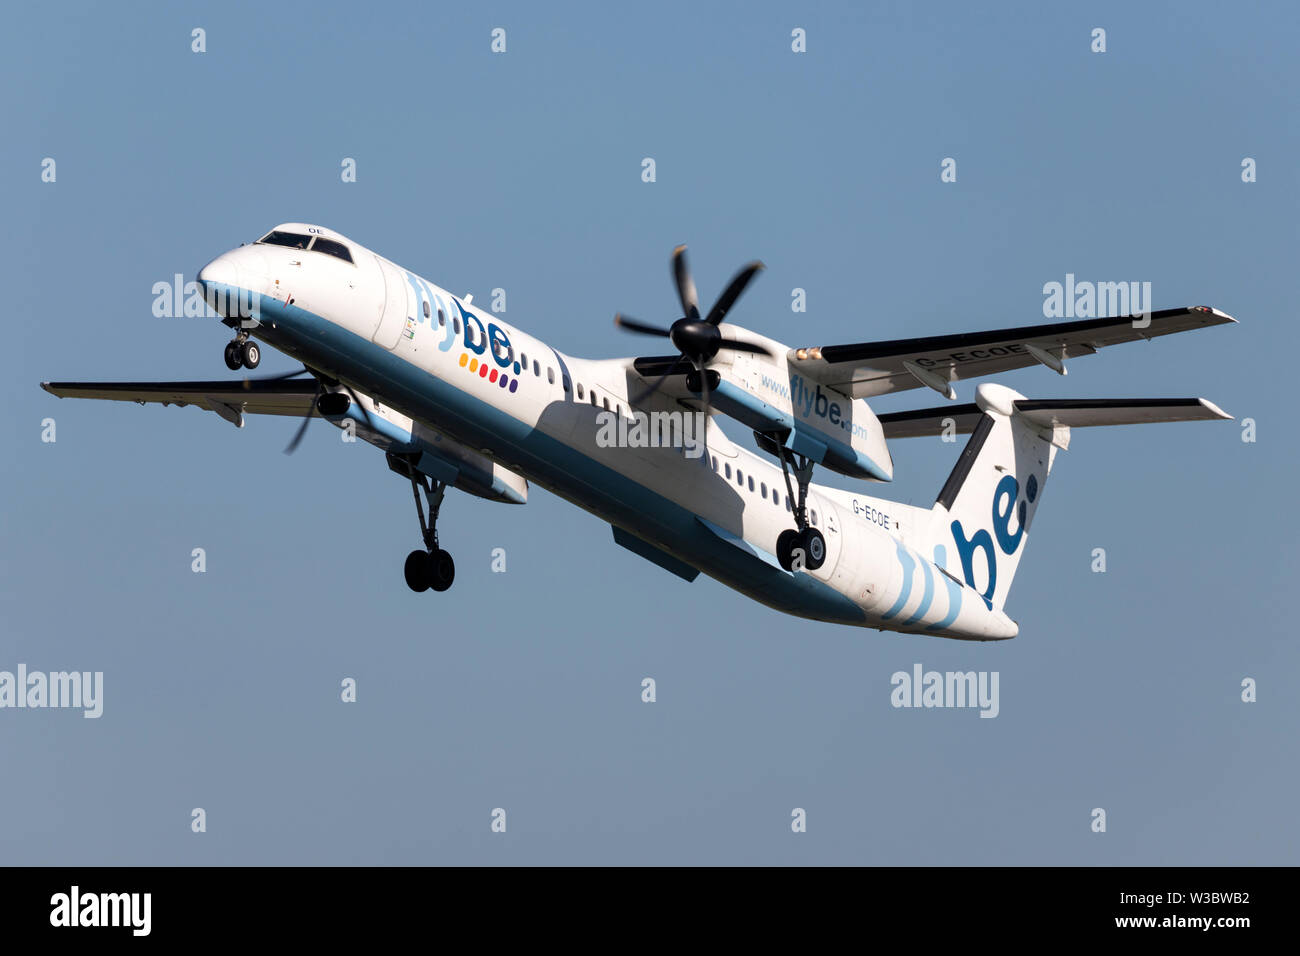 British flybe Bombardier DHC-8-400 Dash 8 with registration G-ECOE just airborne at Amsterdam Airport Schiphol. - Stock Image